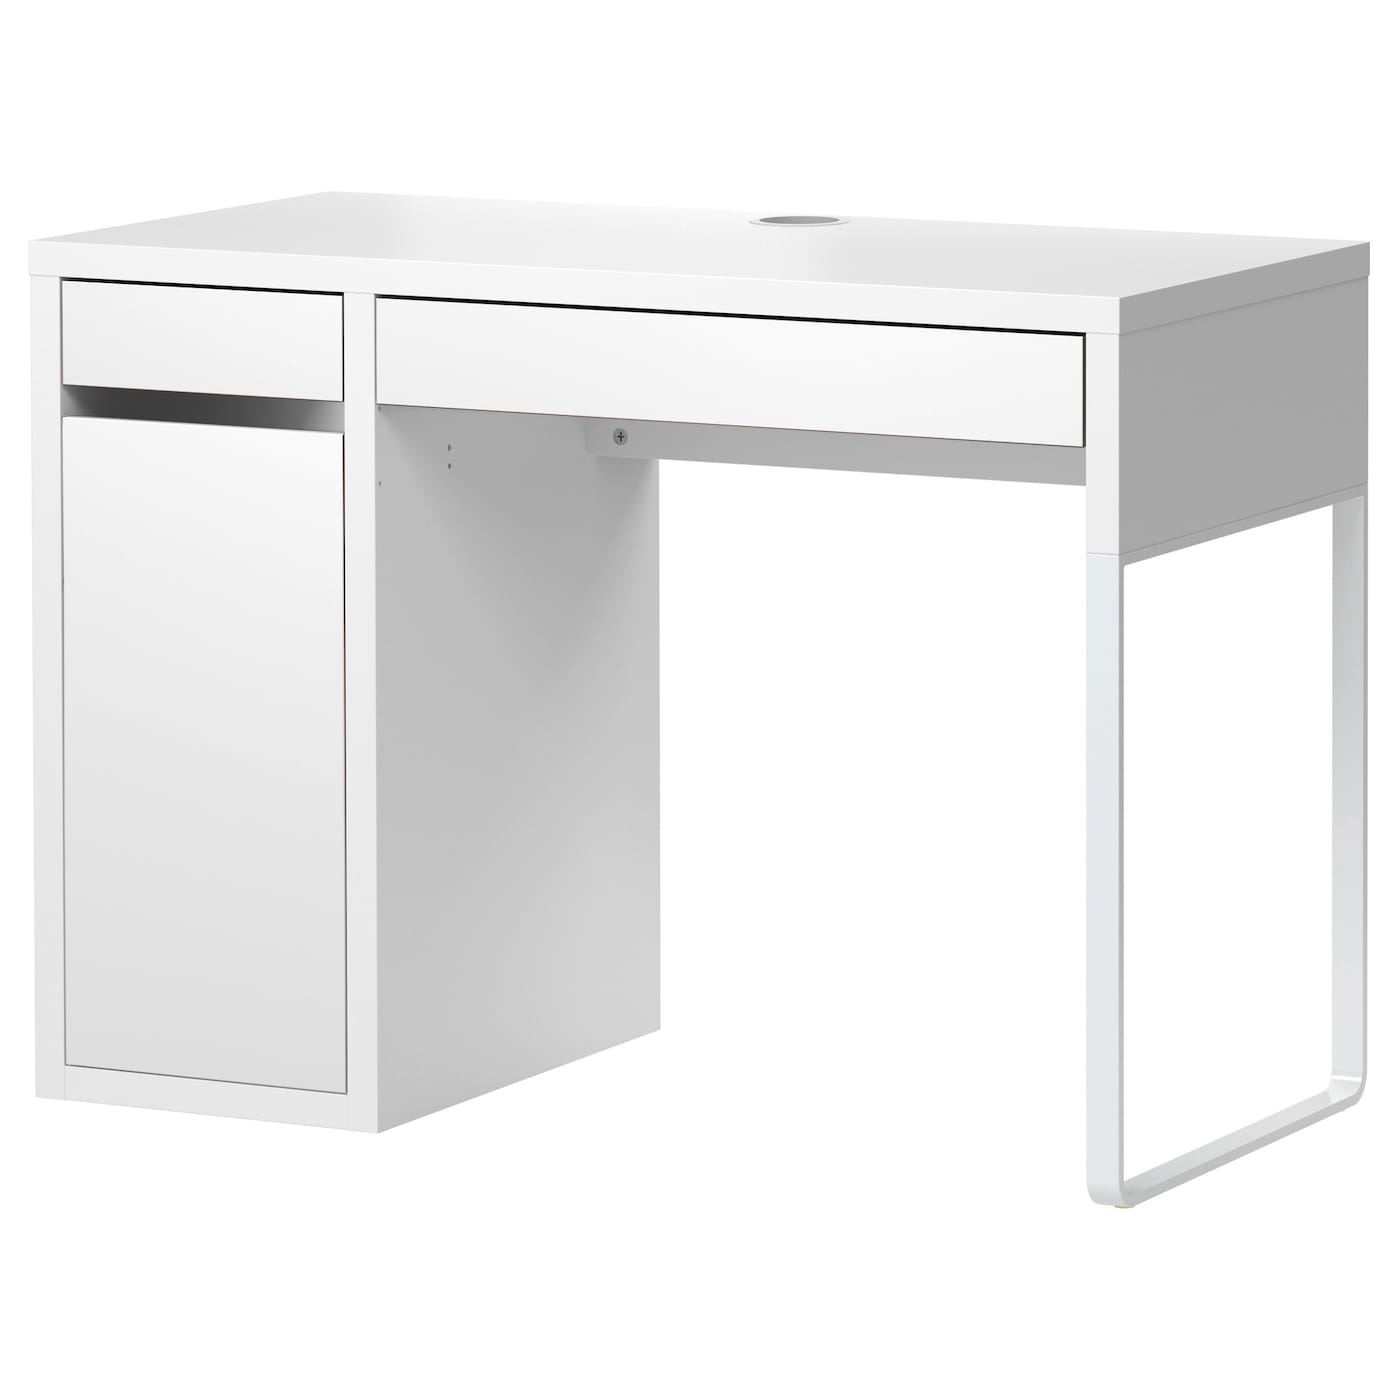 Ikea Micke Desk Drawer Stops Prevent The Drawers From Being Pulled Out Too Far